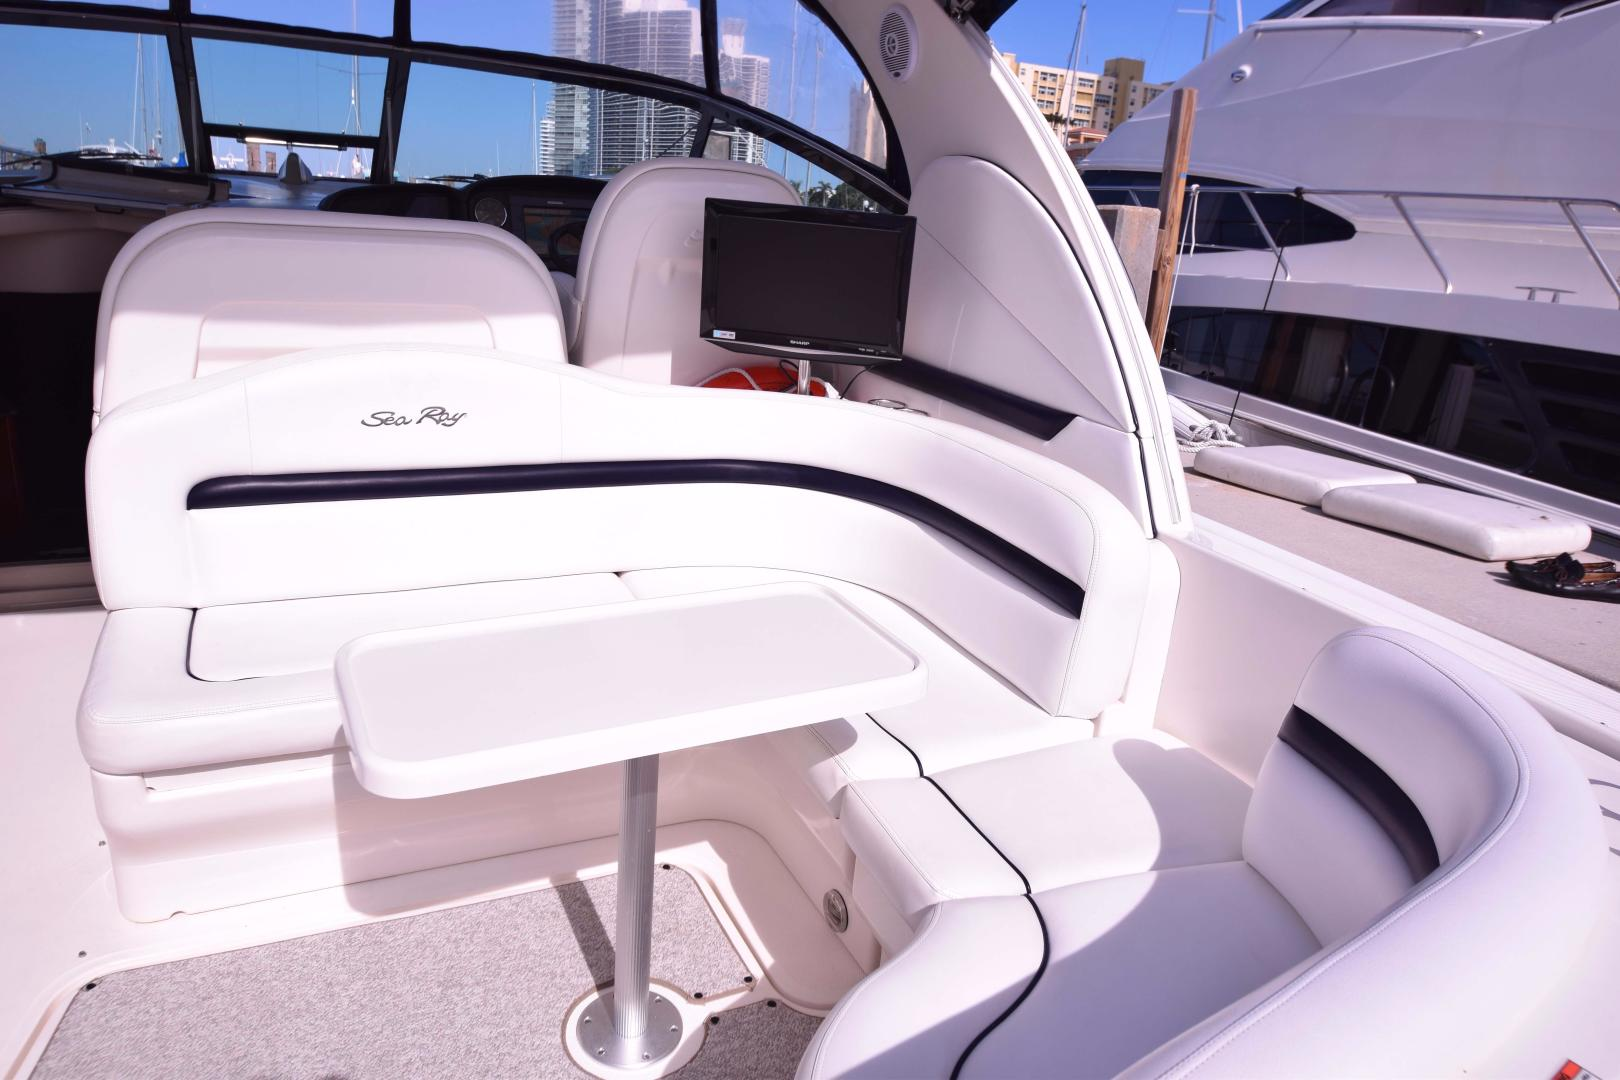 Sea Ray-Sundancer 2008-Heaven Sent Miami Beach-Florida-United States-Aft Deck Seating and Table-369174 | Thumbnail